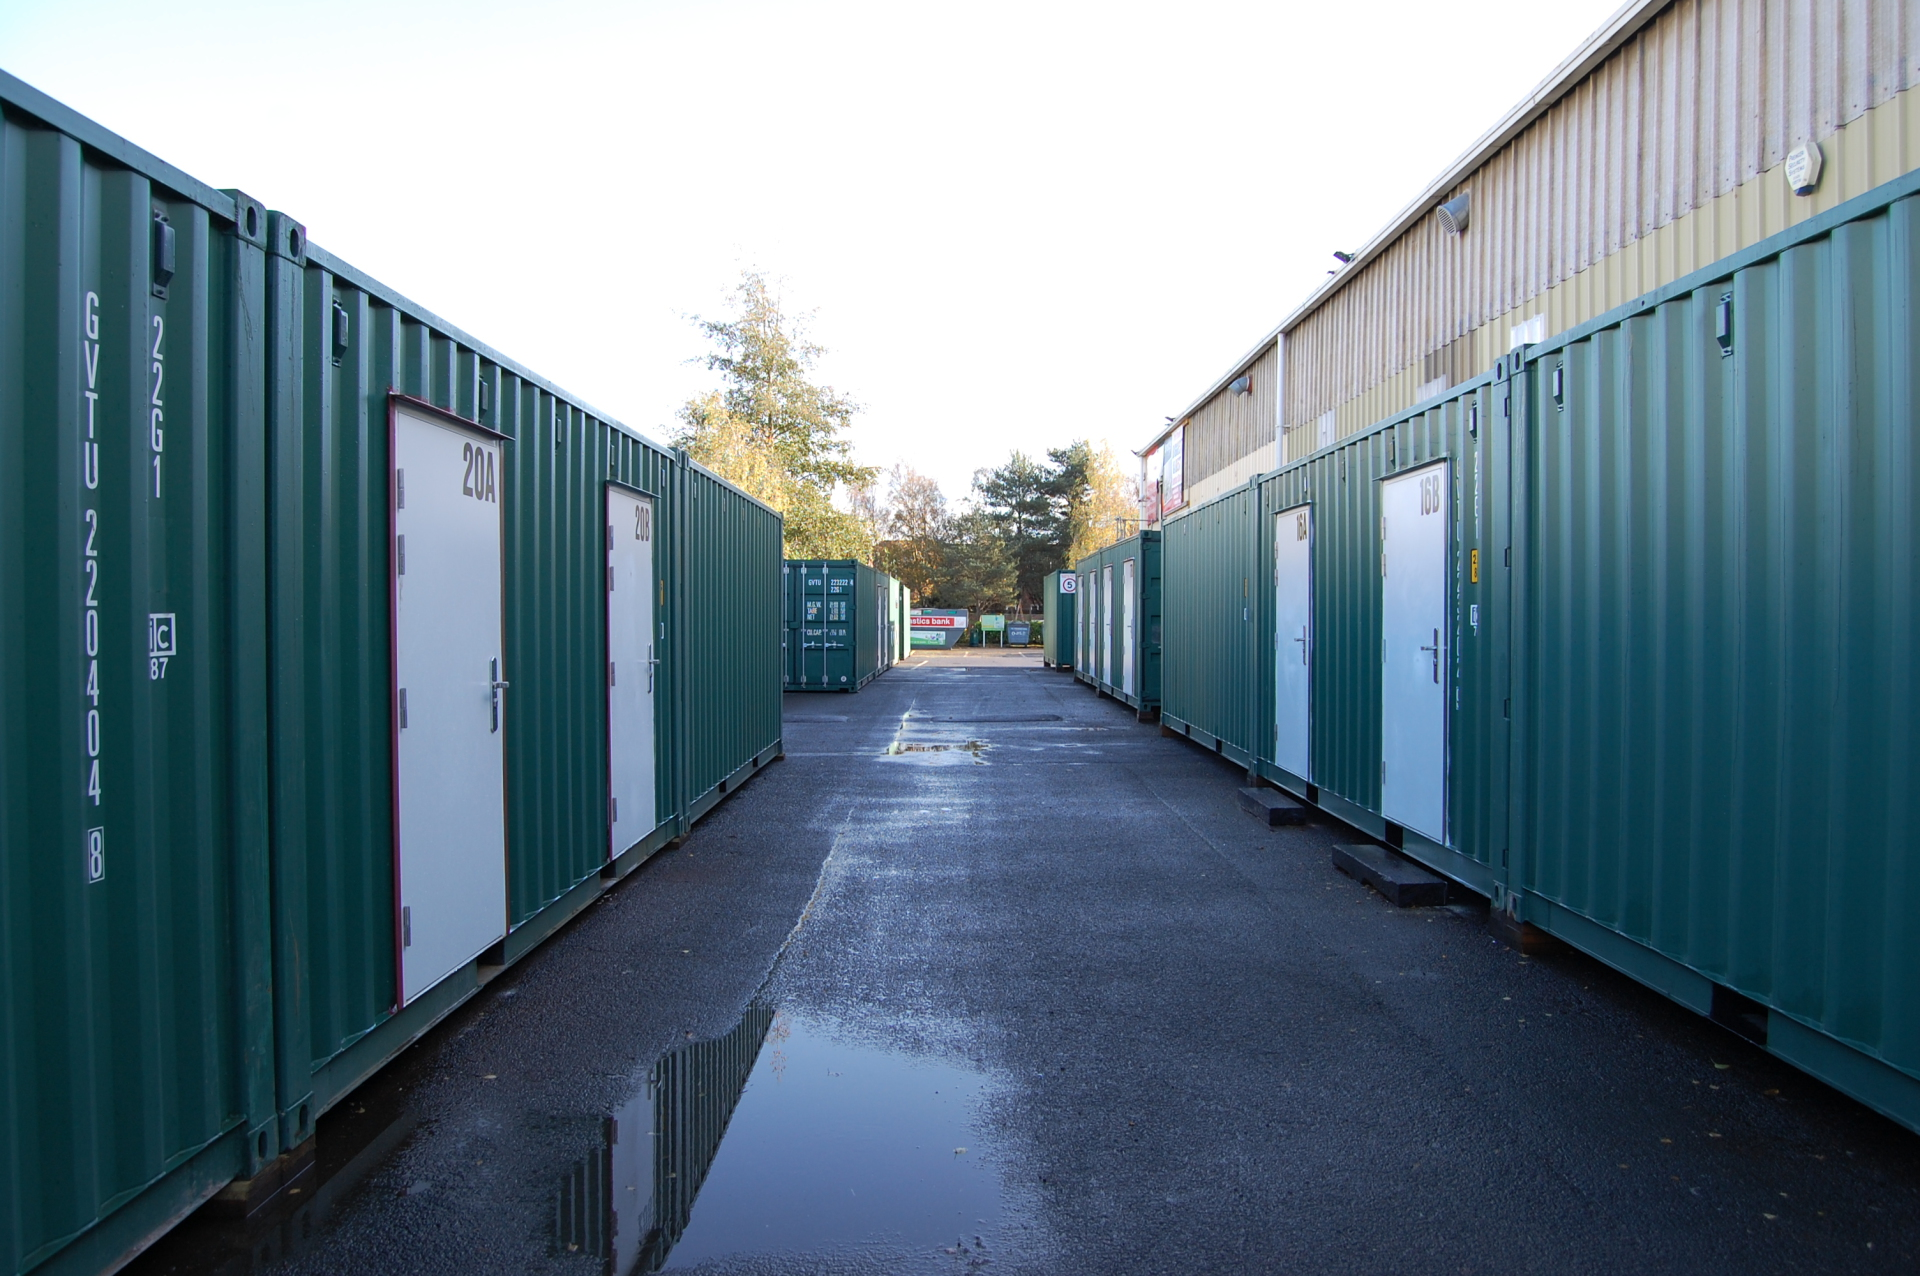 Corridor of containers